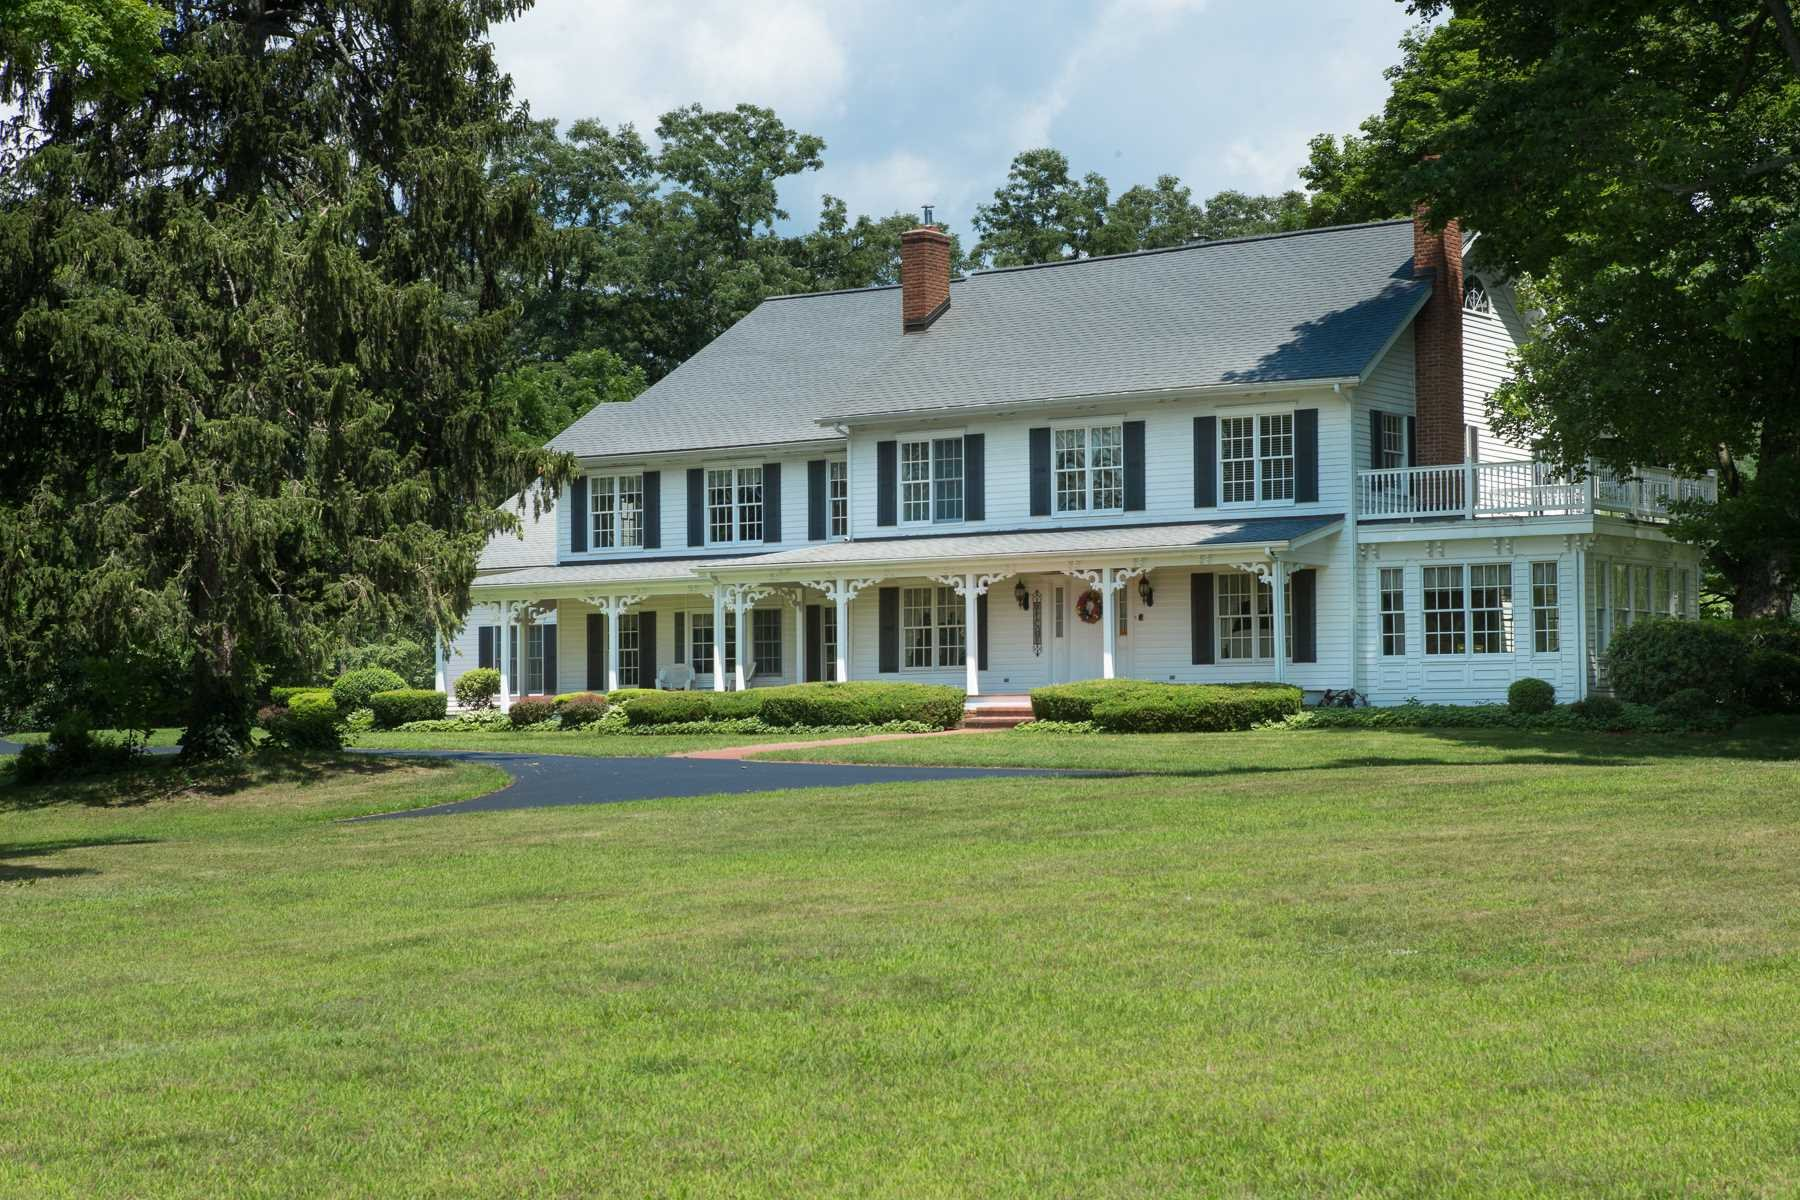 1658 SALT POINT TURNPIKE, Pleasant Valley, NY 12569